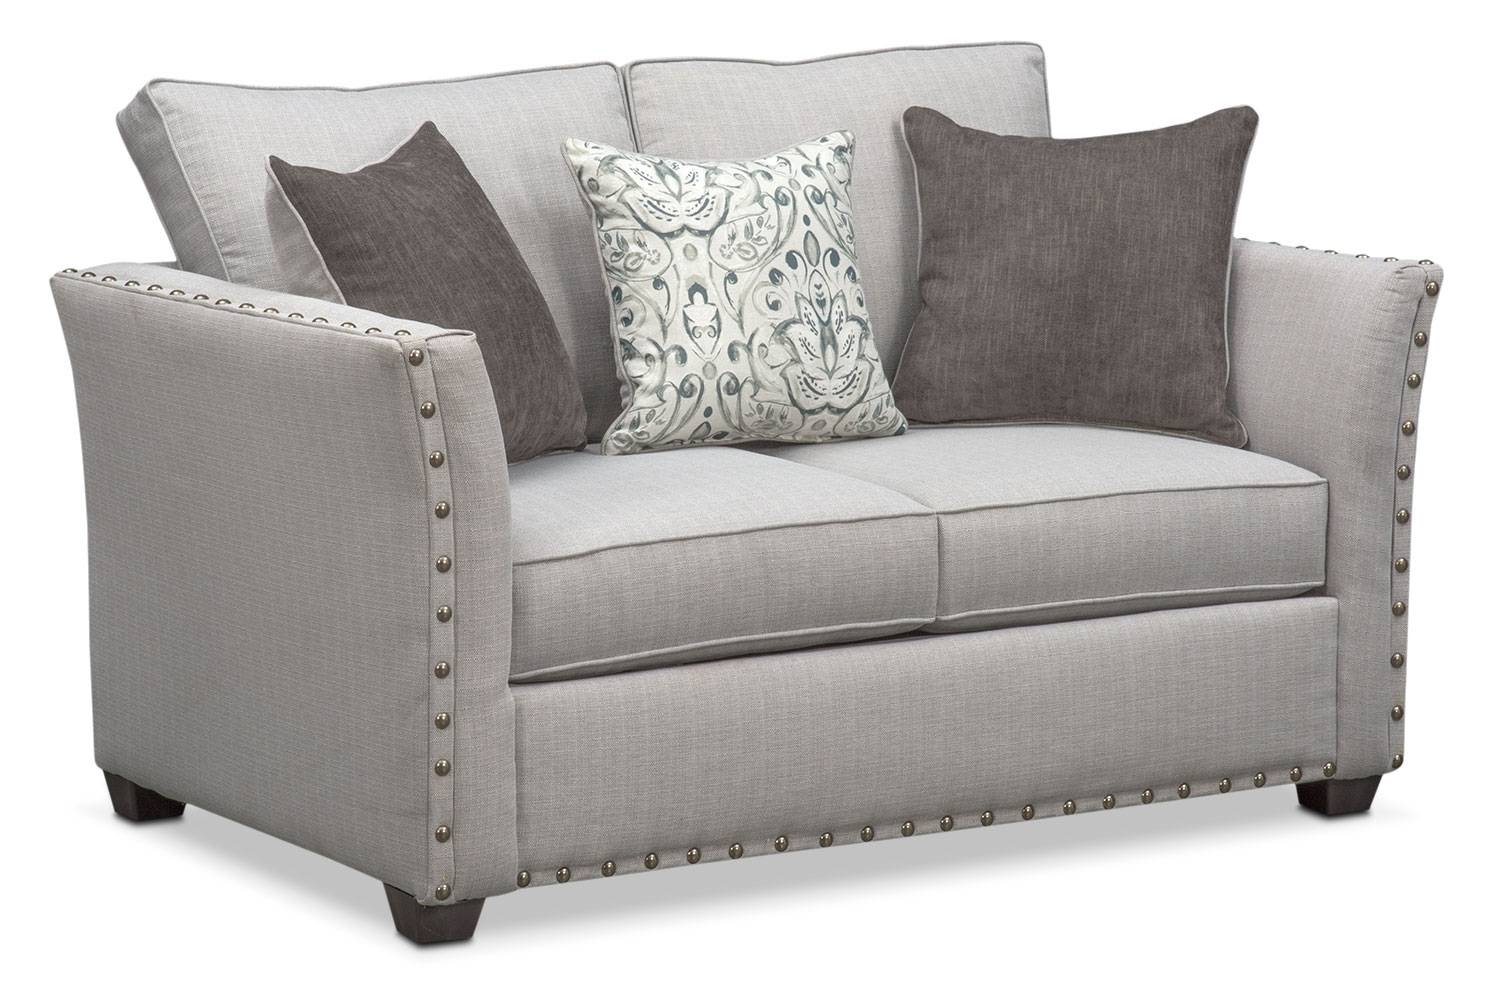 Mckenna Sofa, Loveseat And Accent Chair Set – Pewter | Value City Regarding Sofa Loveseat And Chair Set (View 18 of 30)